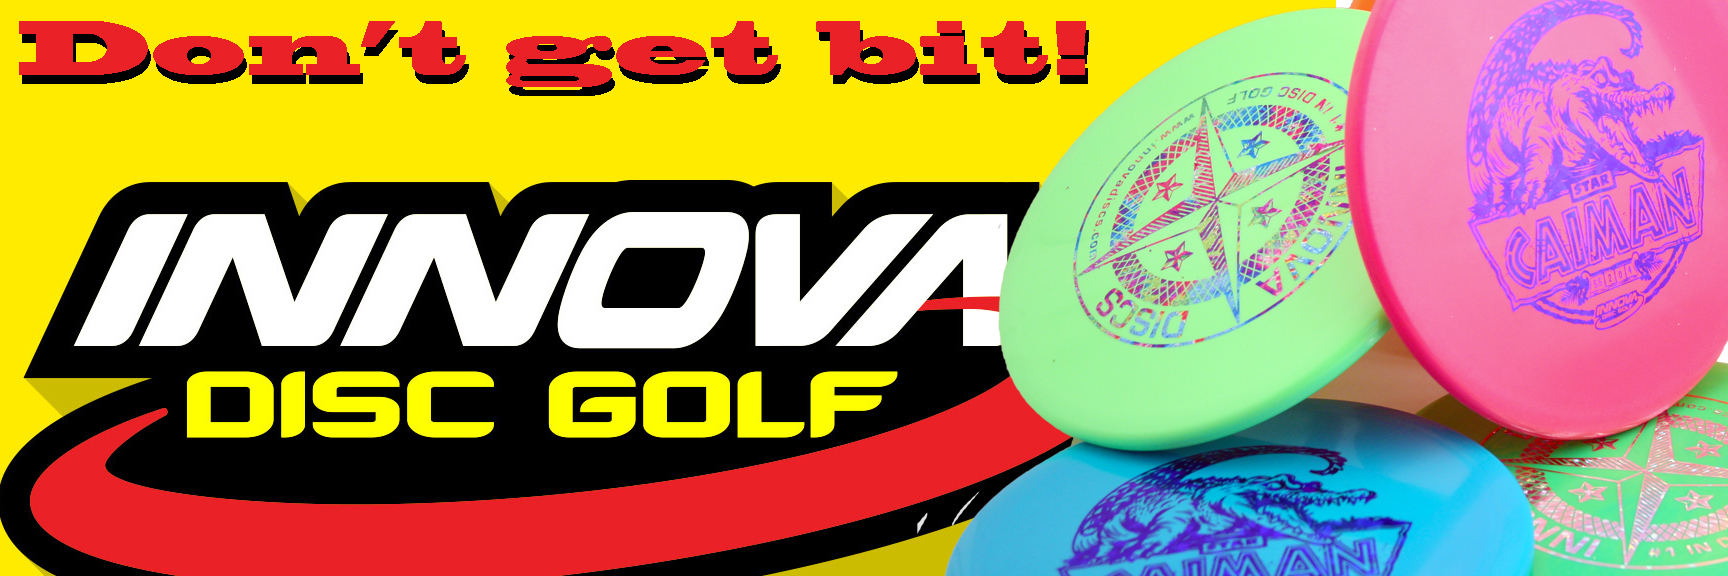 FREESTYLE FRISBEE PRODUCTS